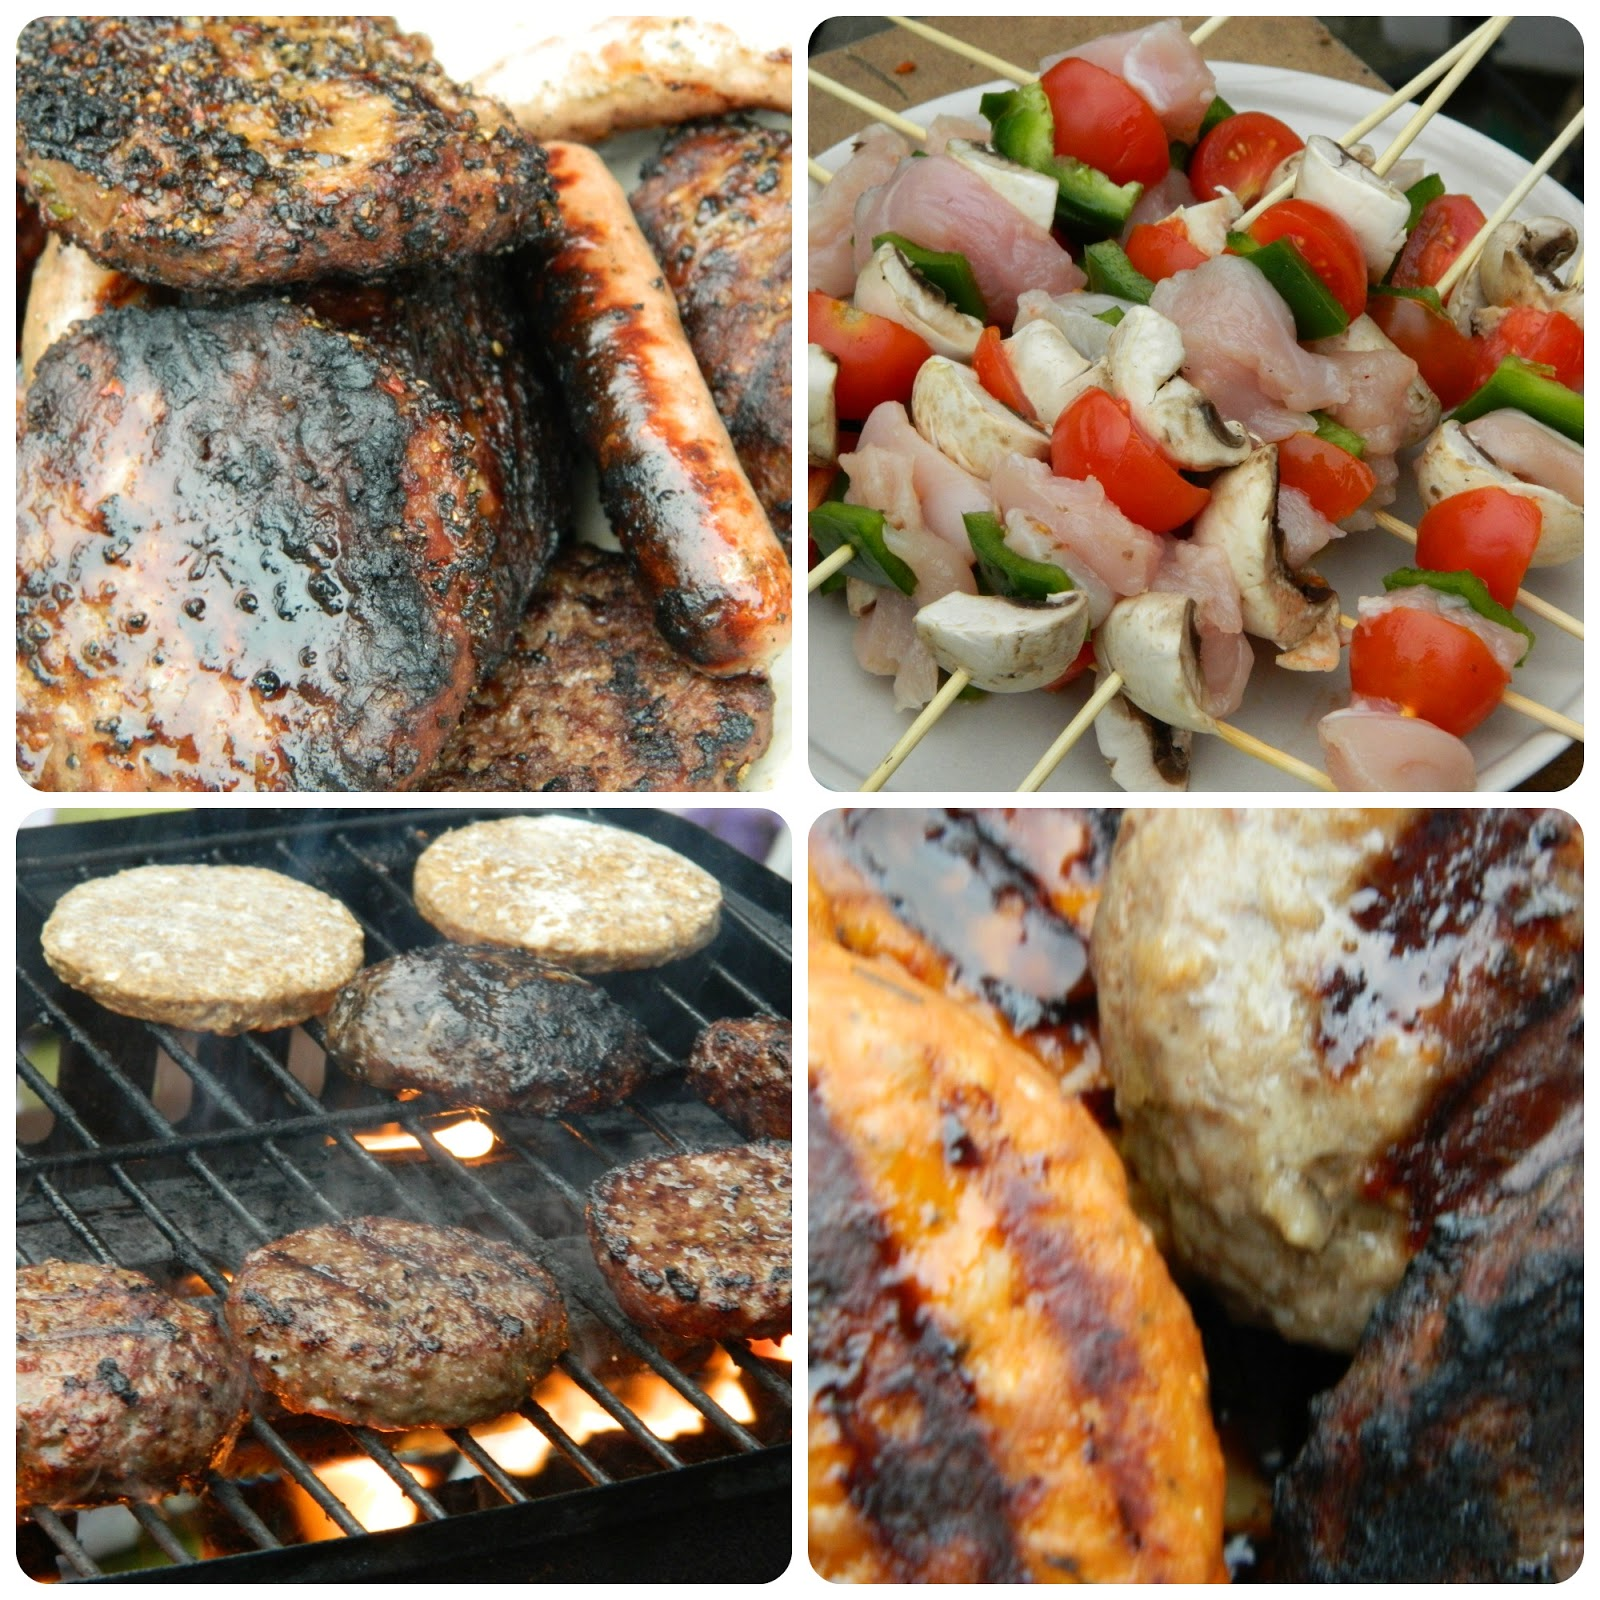 Morrisons Mum Bank Holiday Barbecue #MorrisonsMum